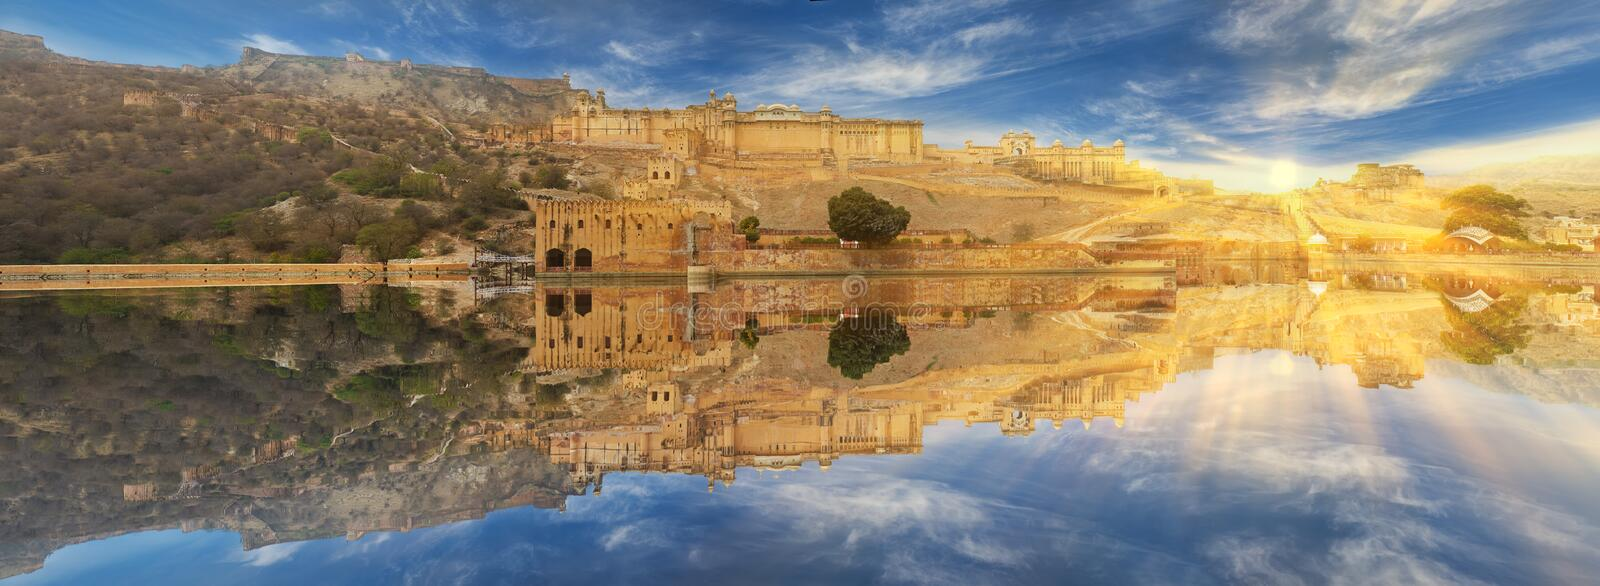 Amer Fort wordt gevestigd in Amer, Rajasthan, India royalty-vrije stock afbeelding